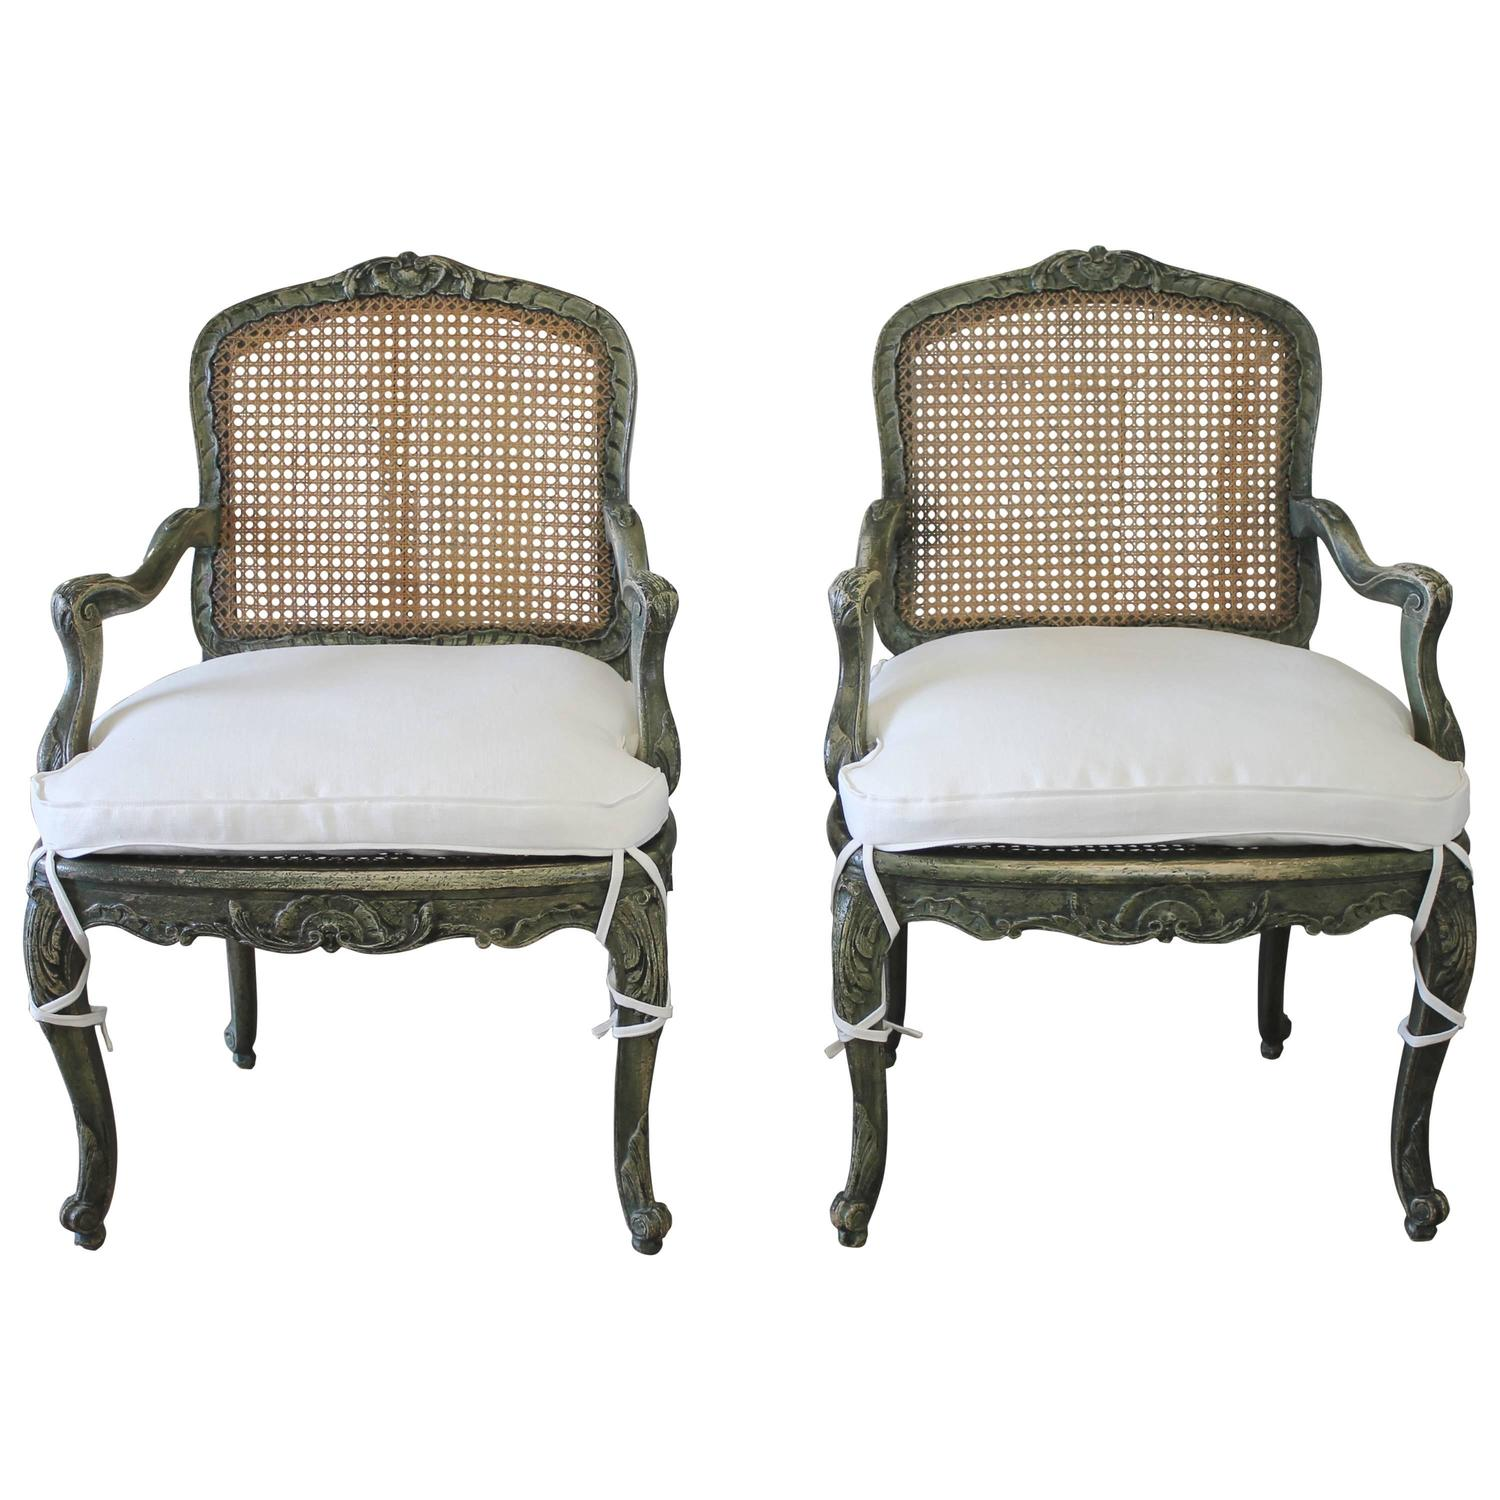 19th Century Pair Of Painted Cane Chairs For Sale At 1stdibs